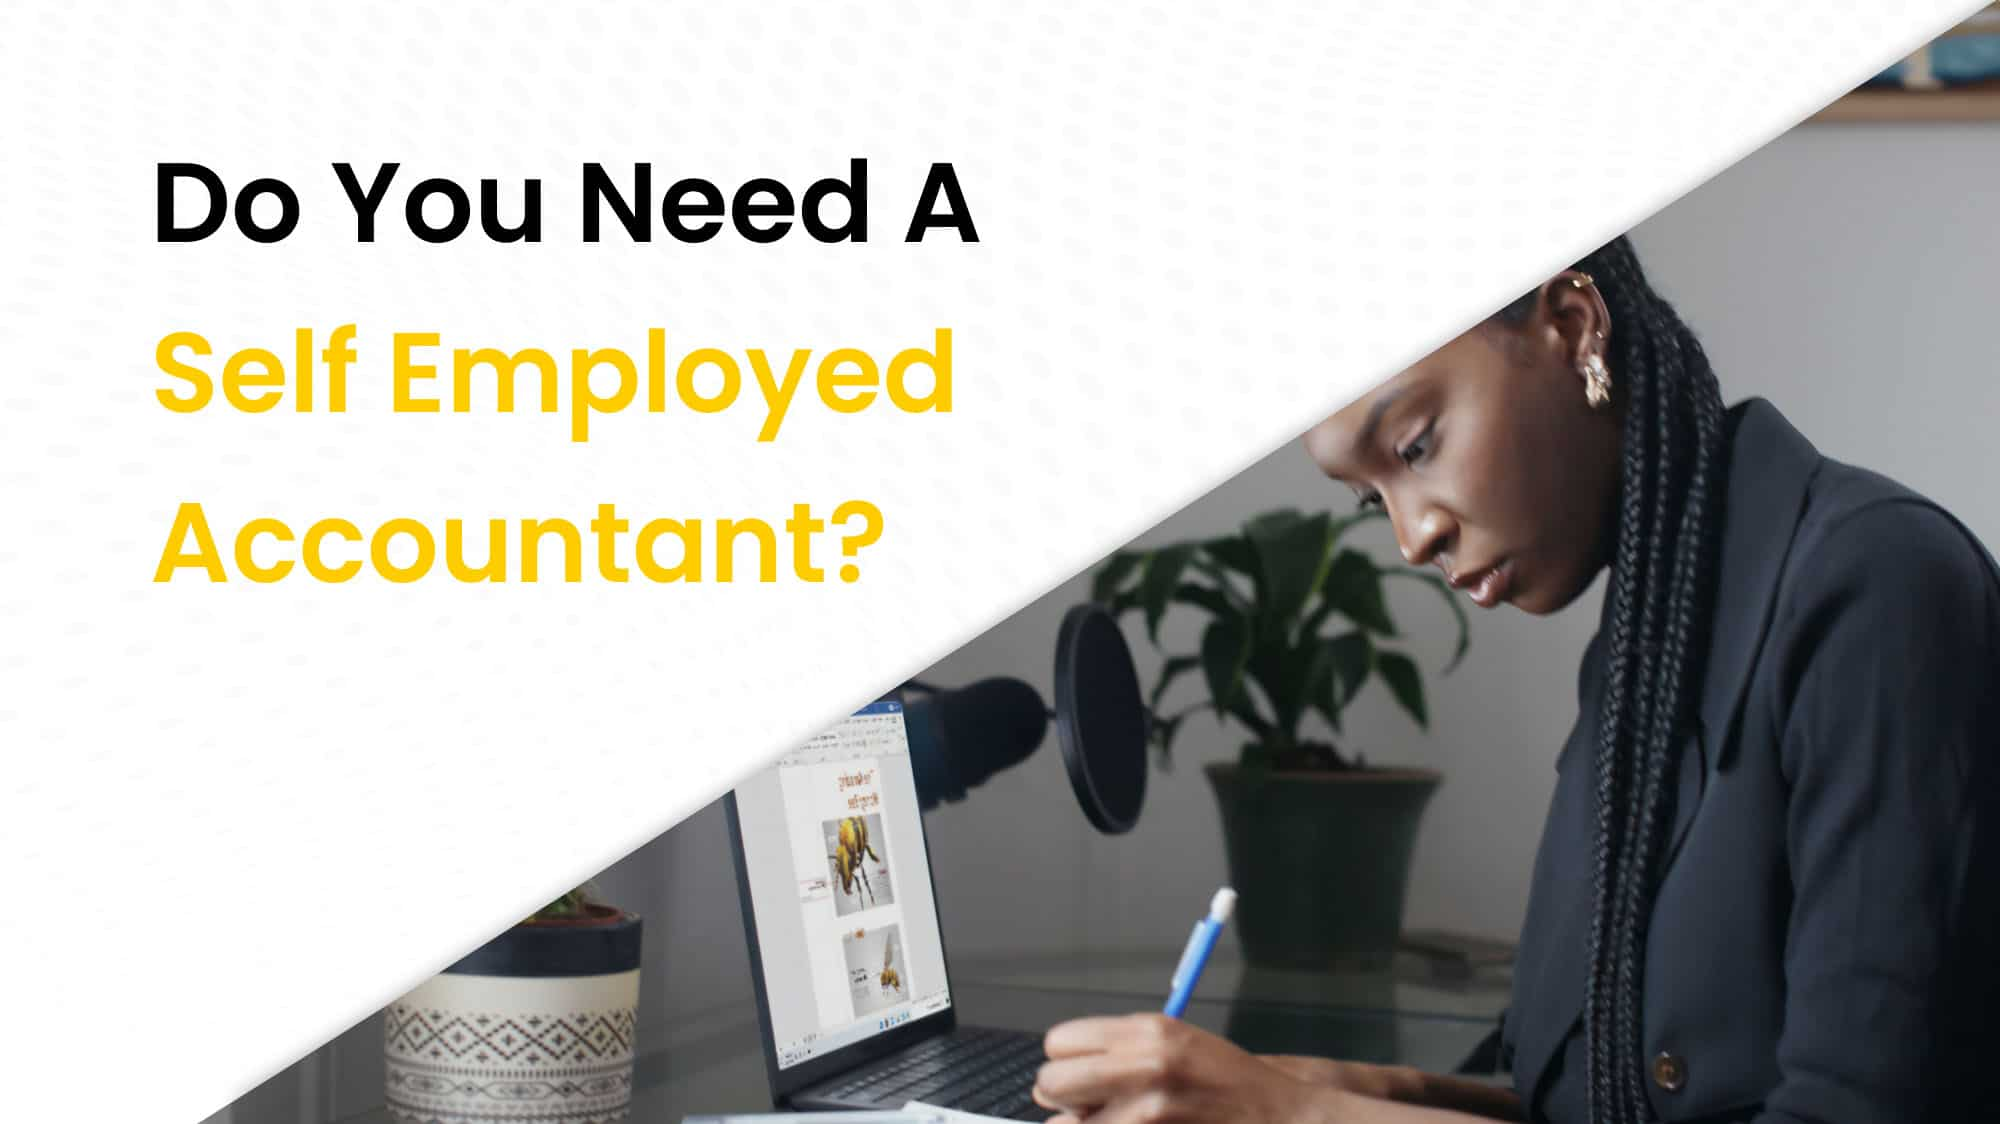 Do you need a self employed accountant